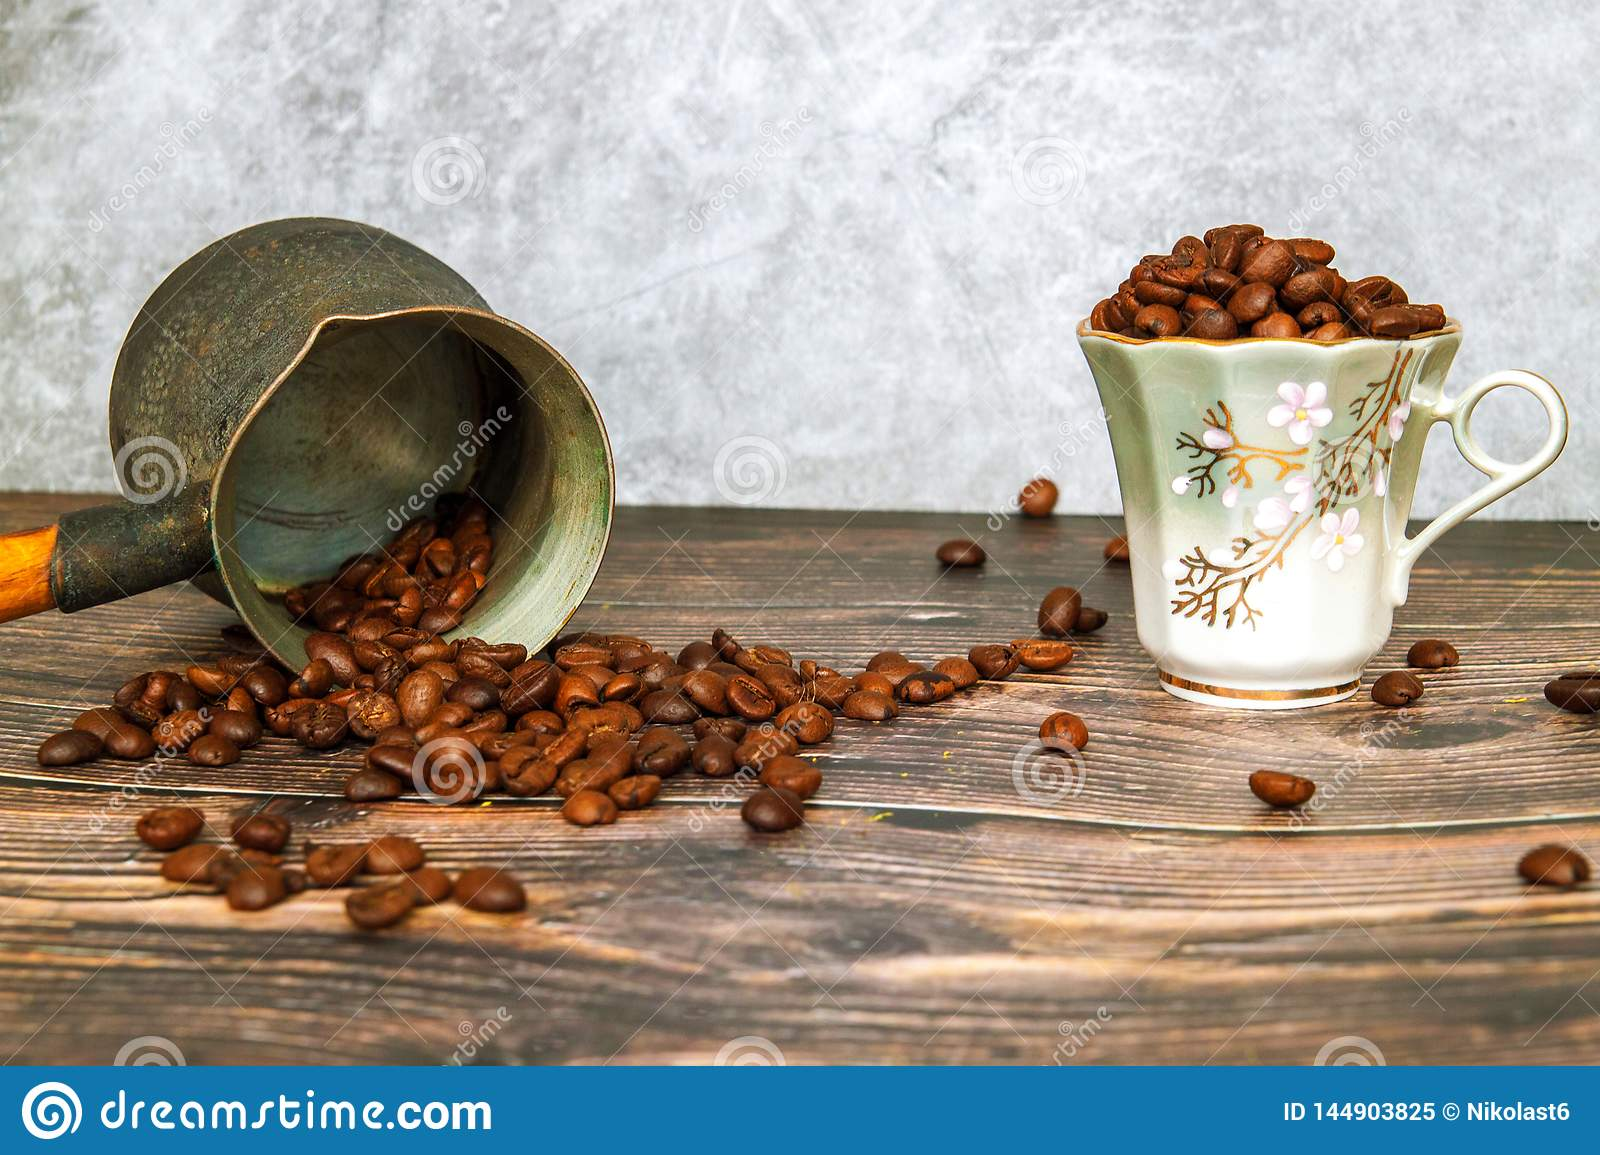 Coffee beans falling on wood table, vintage toned. How to choose a quality coffee.